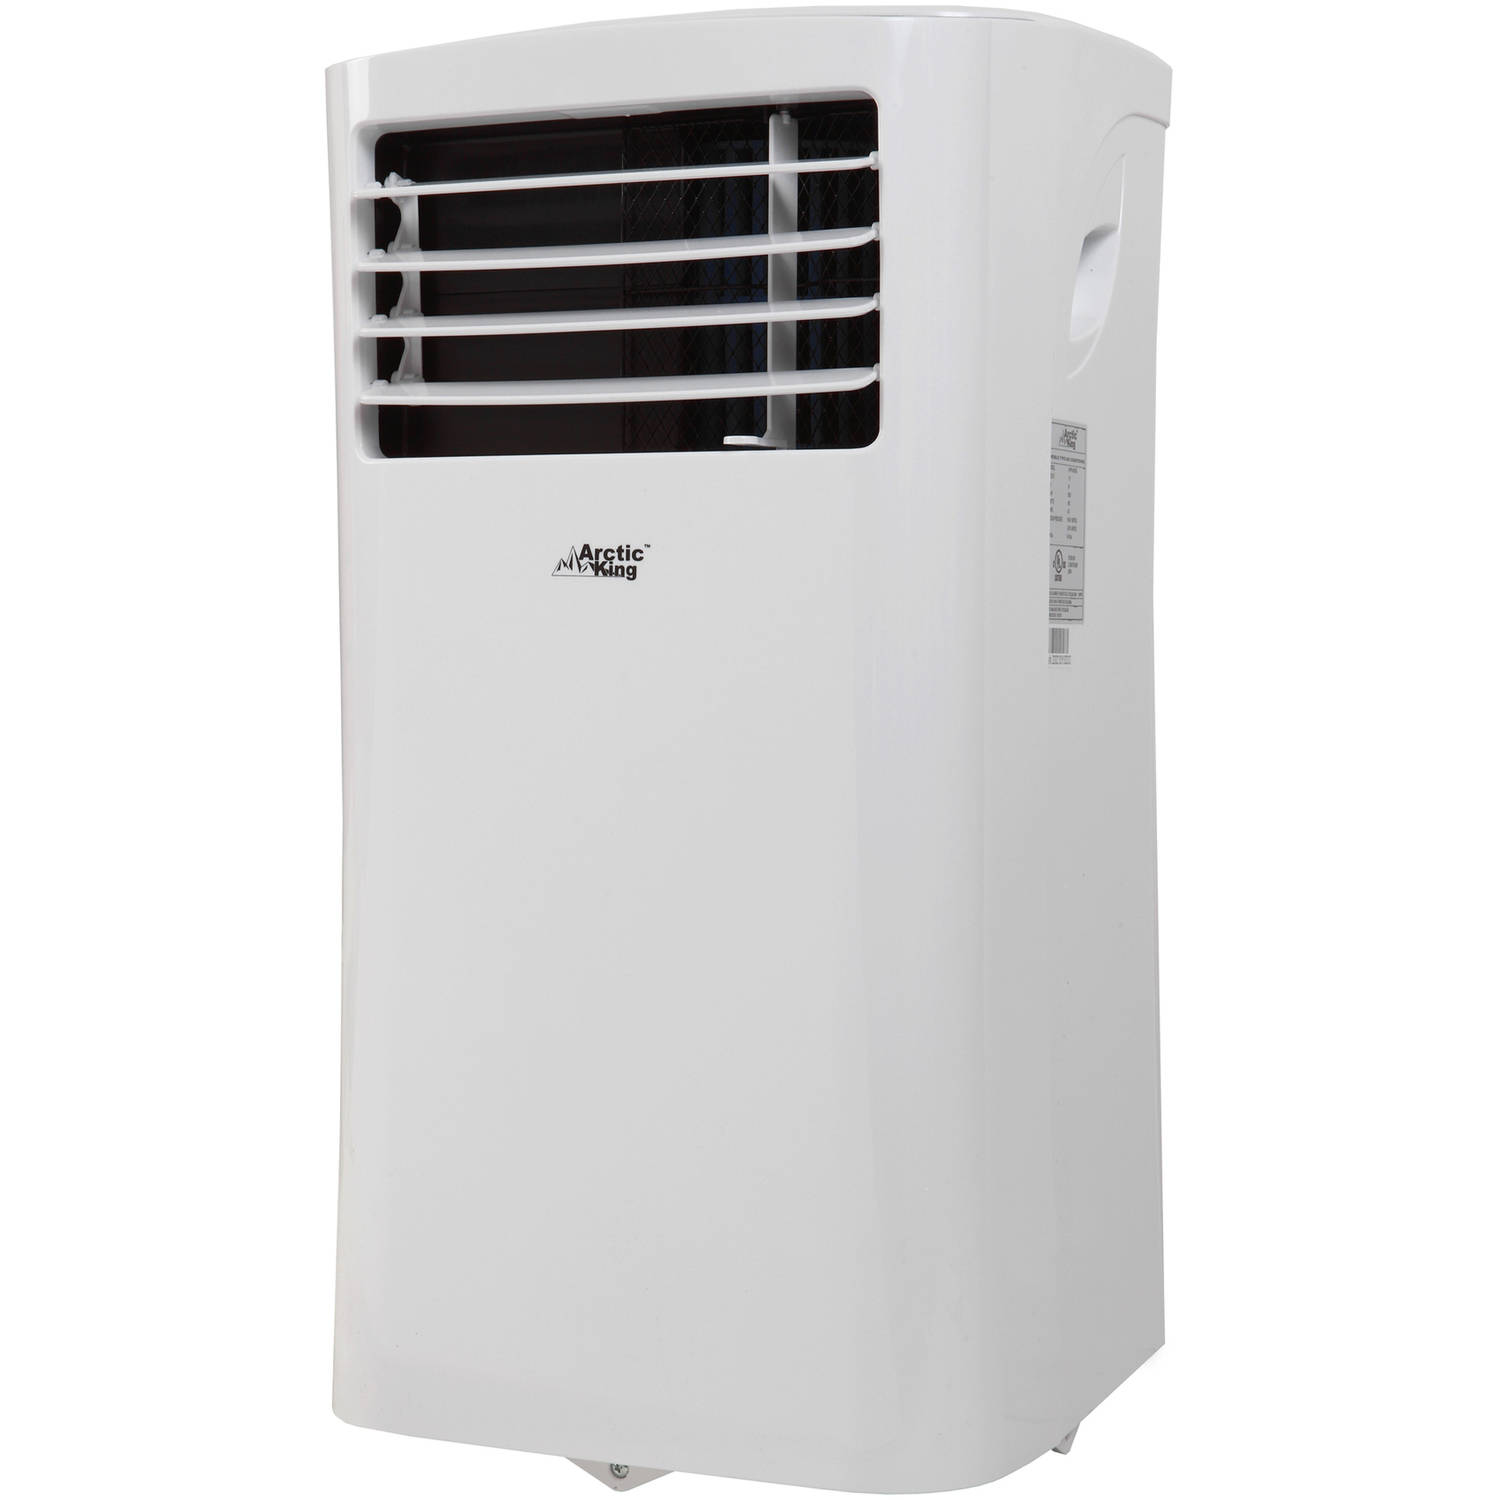 Arctic King WPPH 08CR5 8,000Btu Remote Control Portable Air Conditioner,  White Image 2